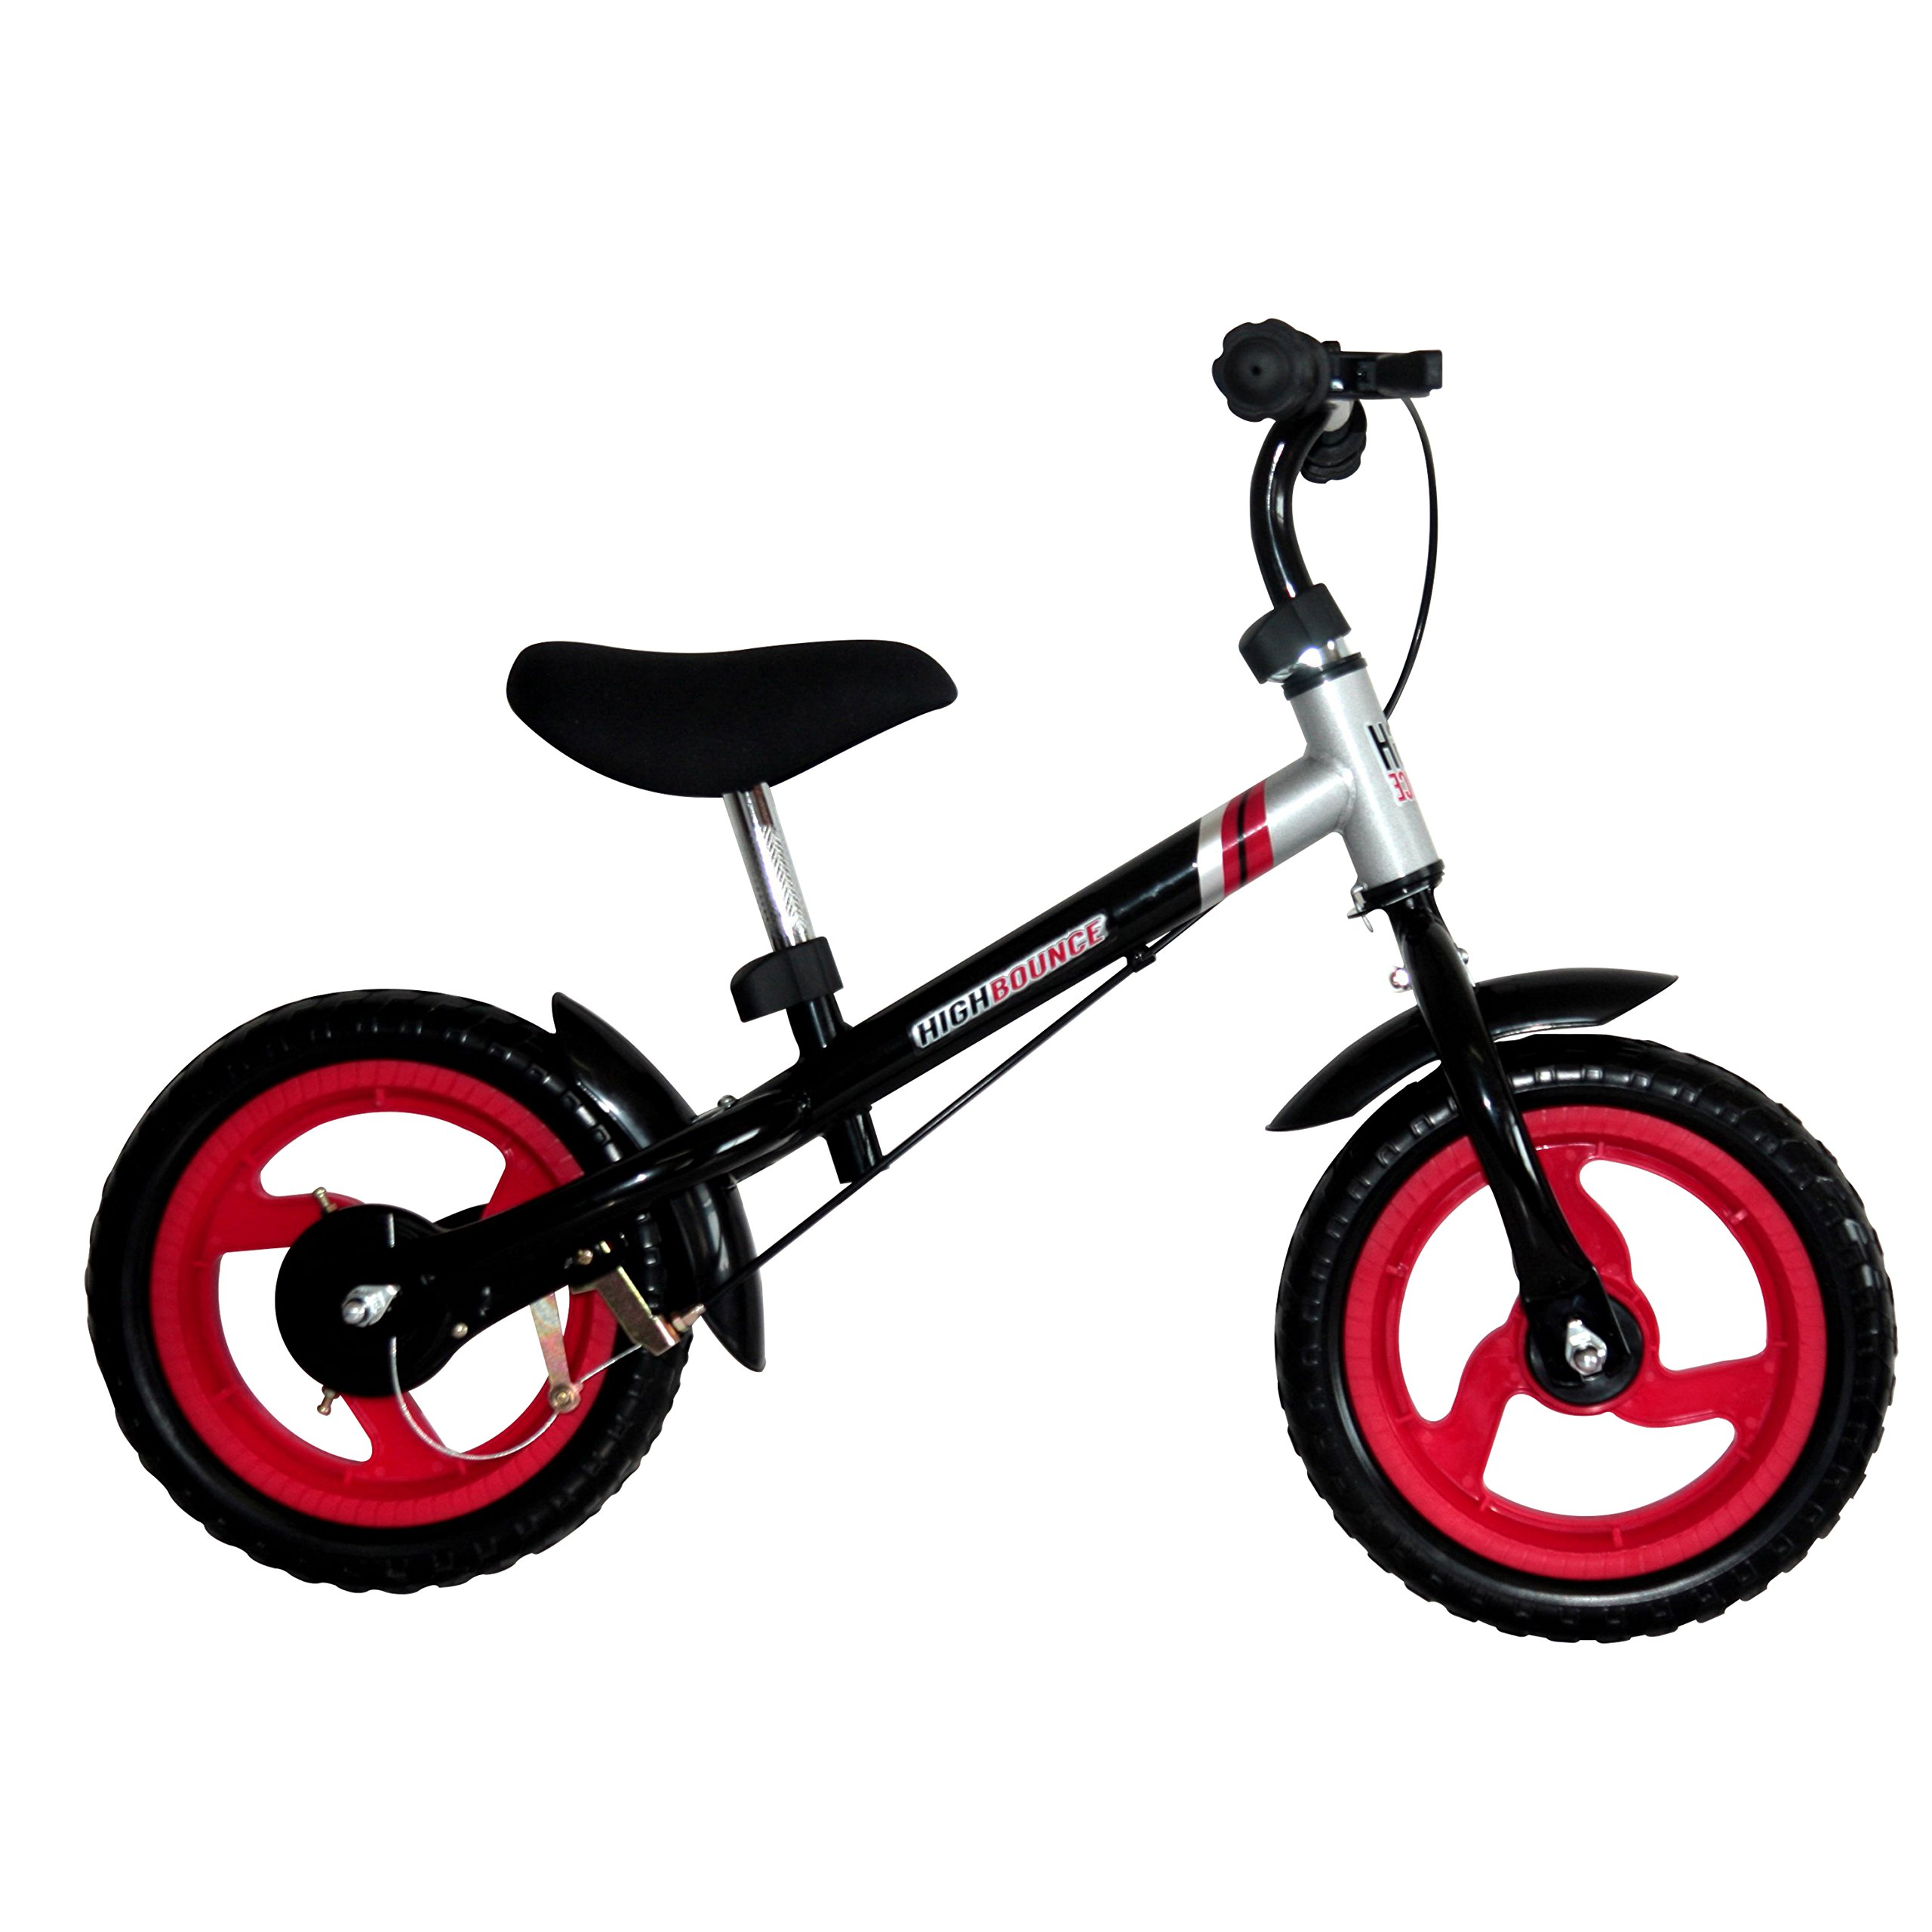 High Bounce Balance Bike Adjustable from 11''-16'' (Red)